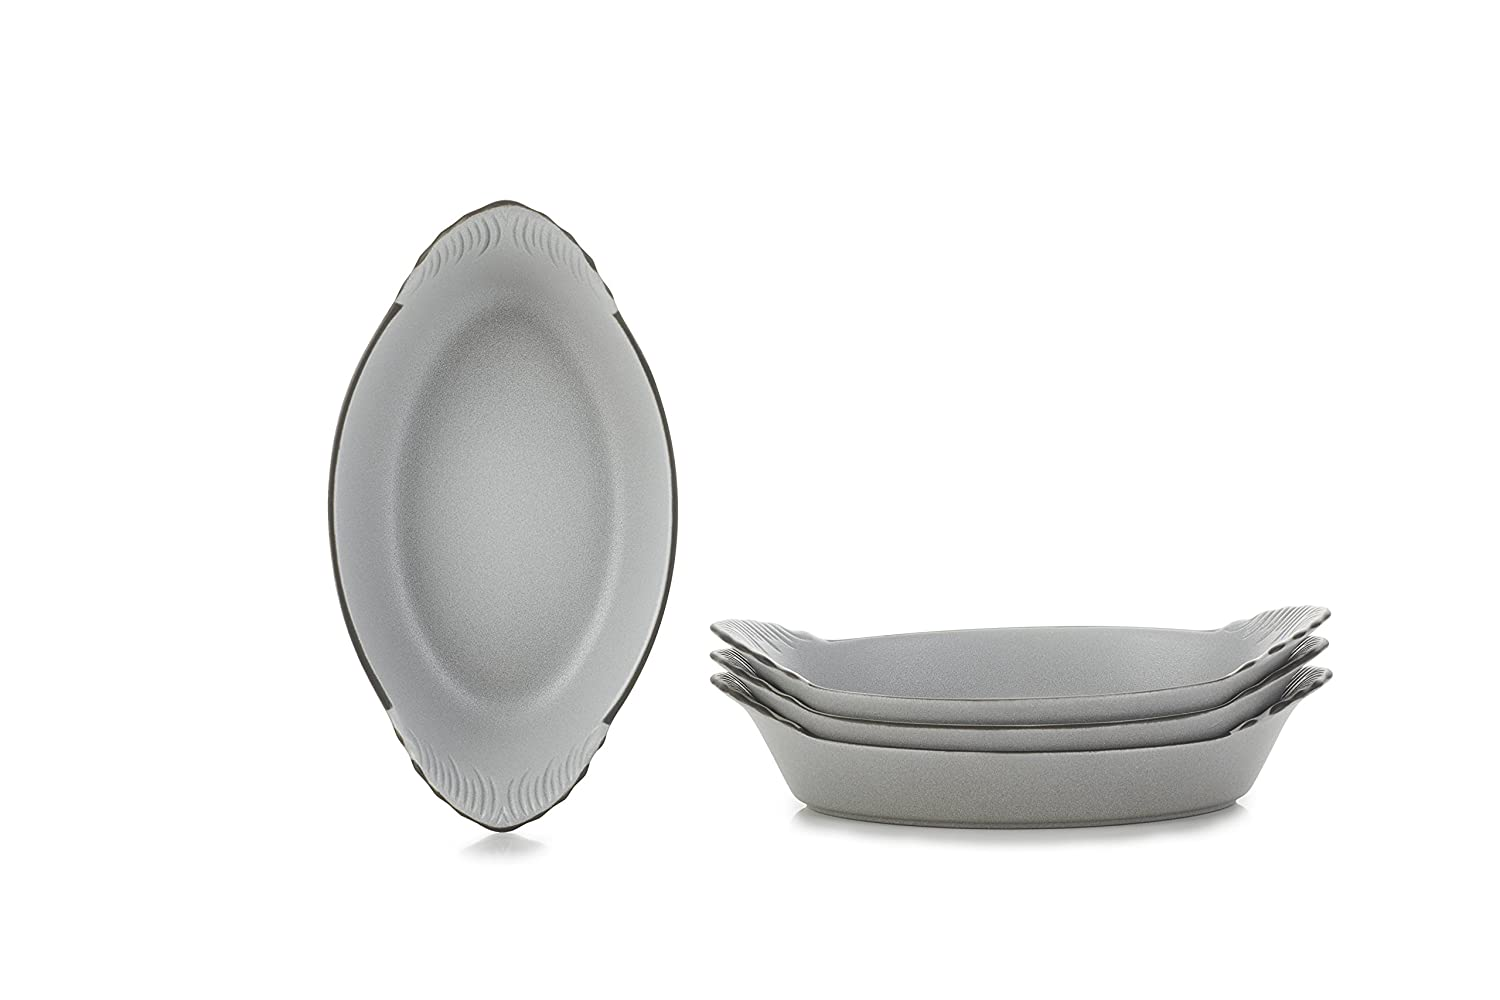 REVOL 651704/4 Oval Eared Dishes, Set Of 4, 7.75' x 4.25' x 1.5', Cast Iron Style